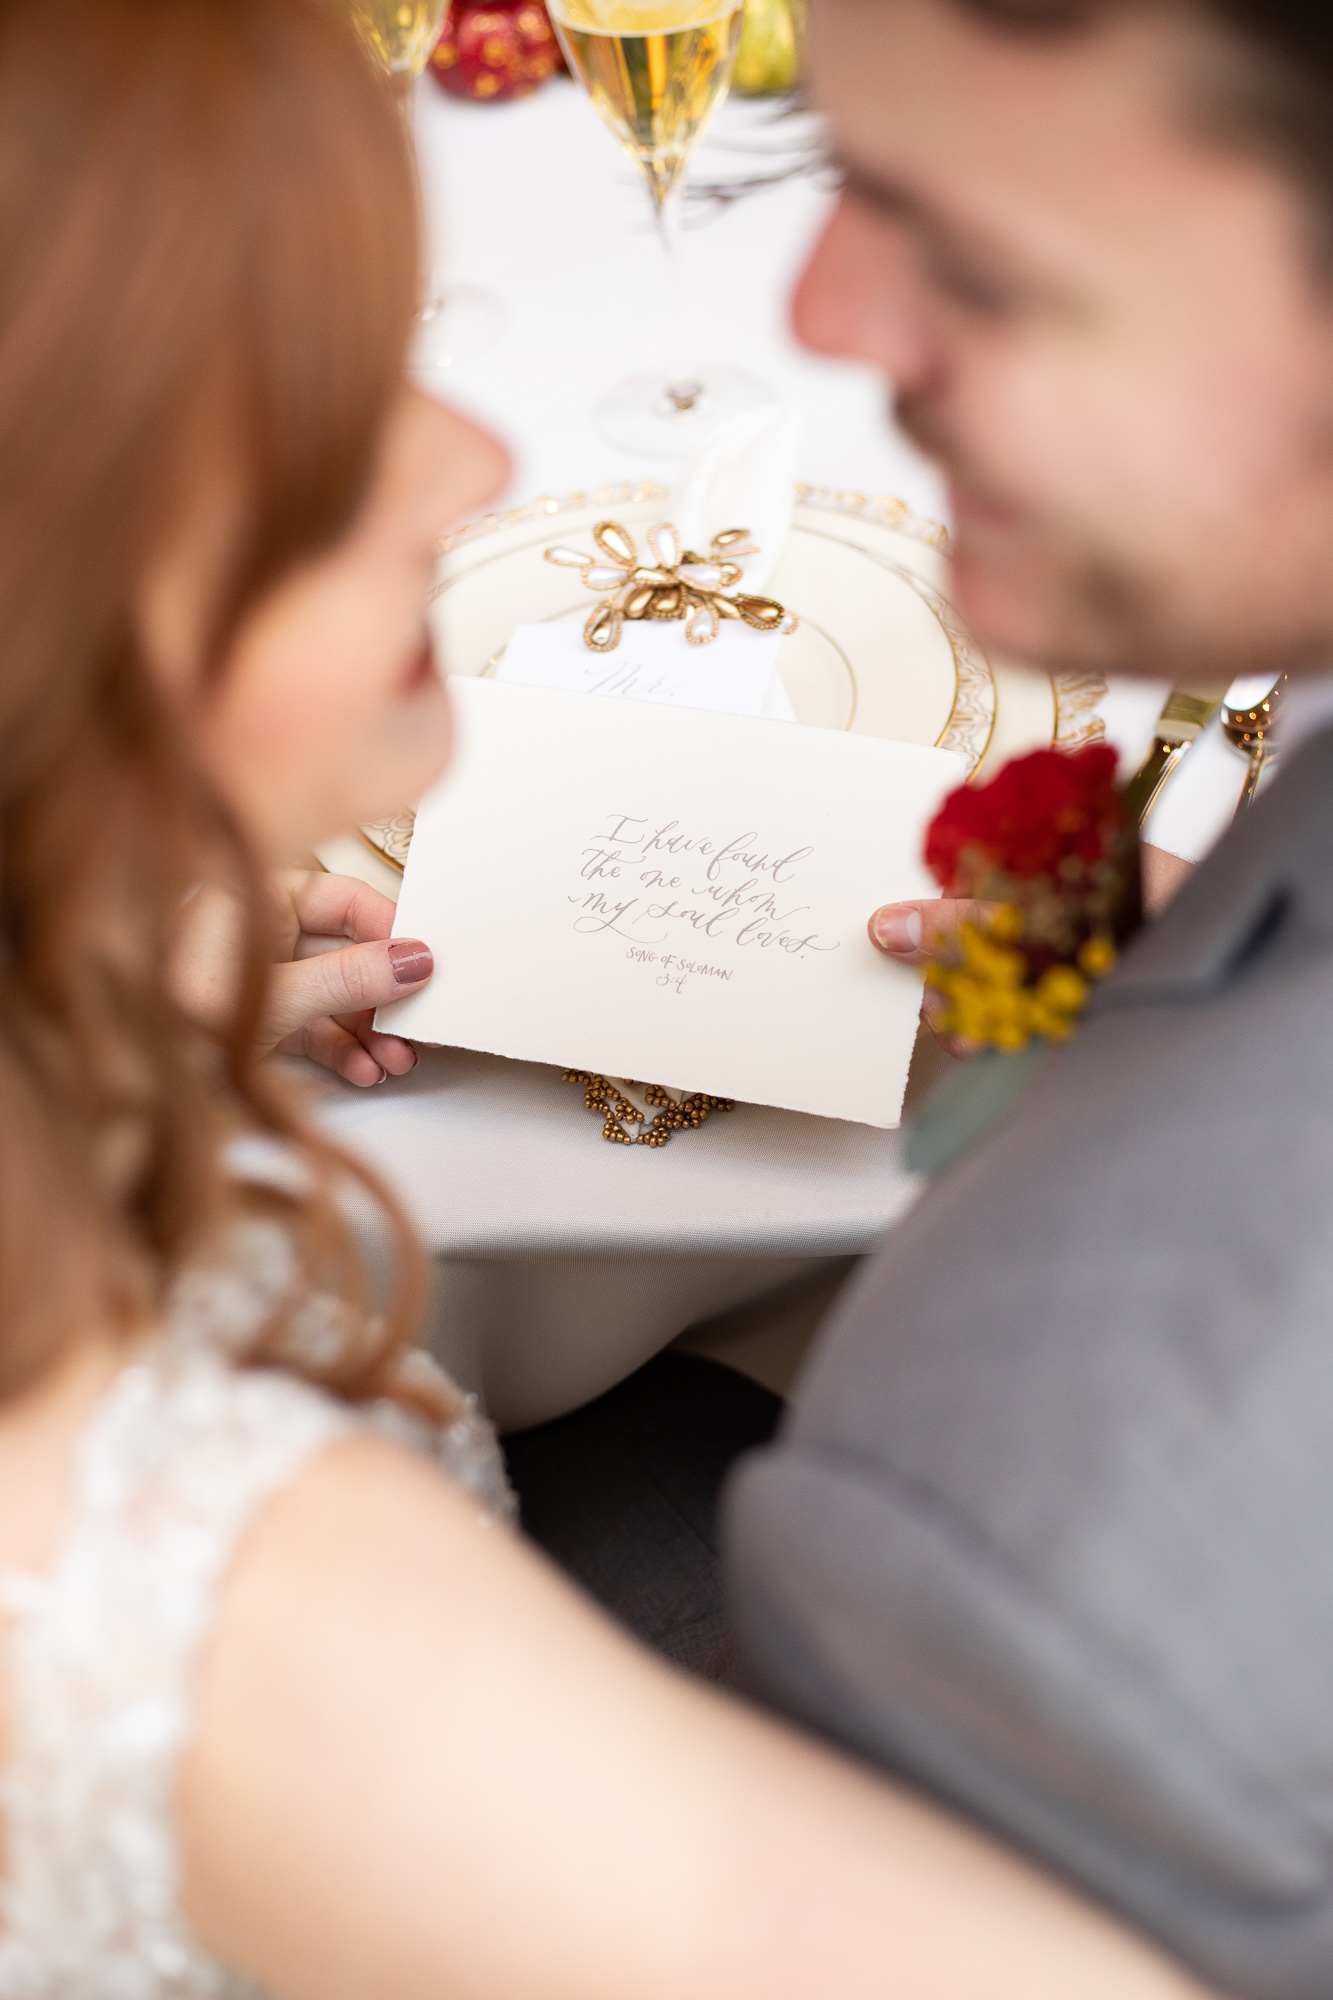 Wood & Grace Bible verse with bride and groom at autumn wedding styled shoot.